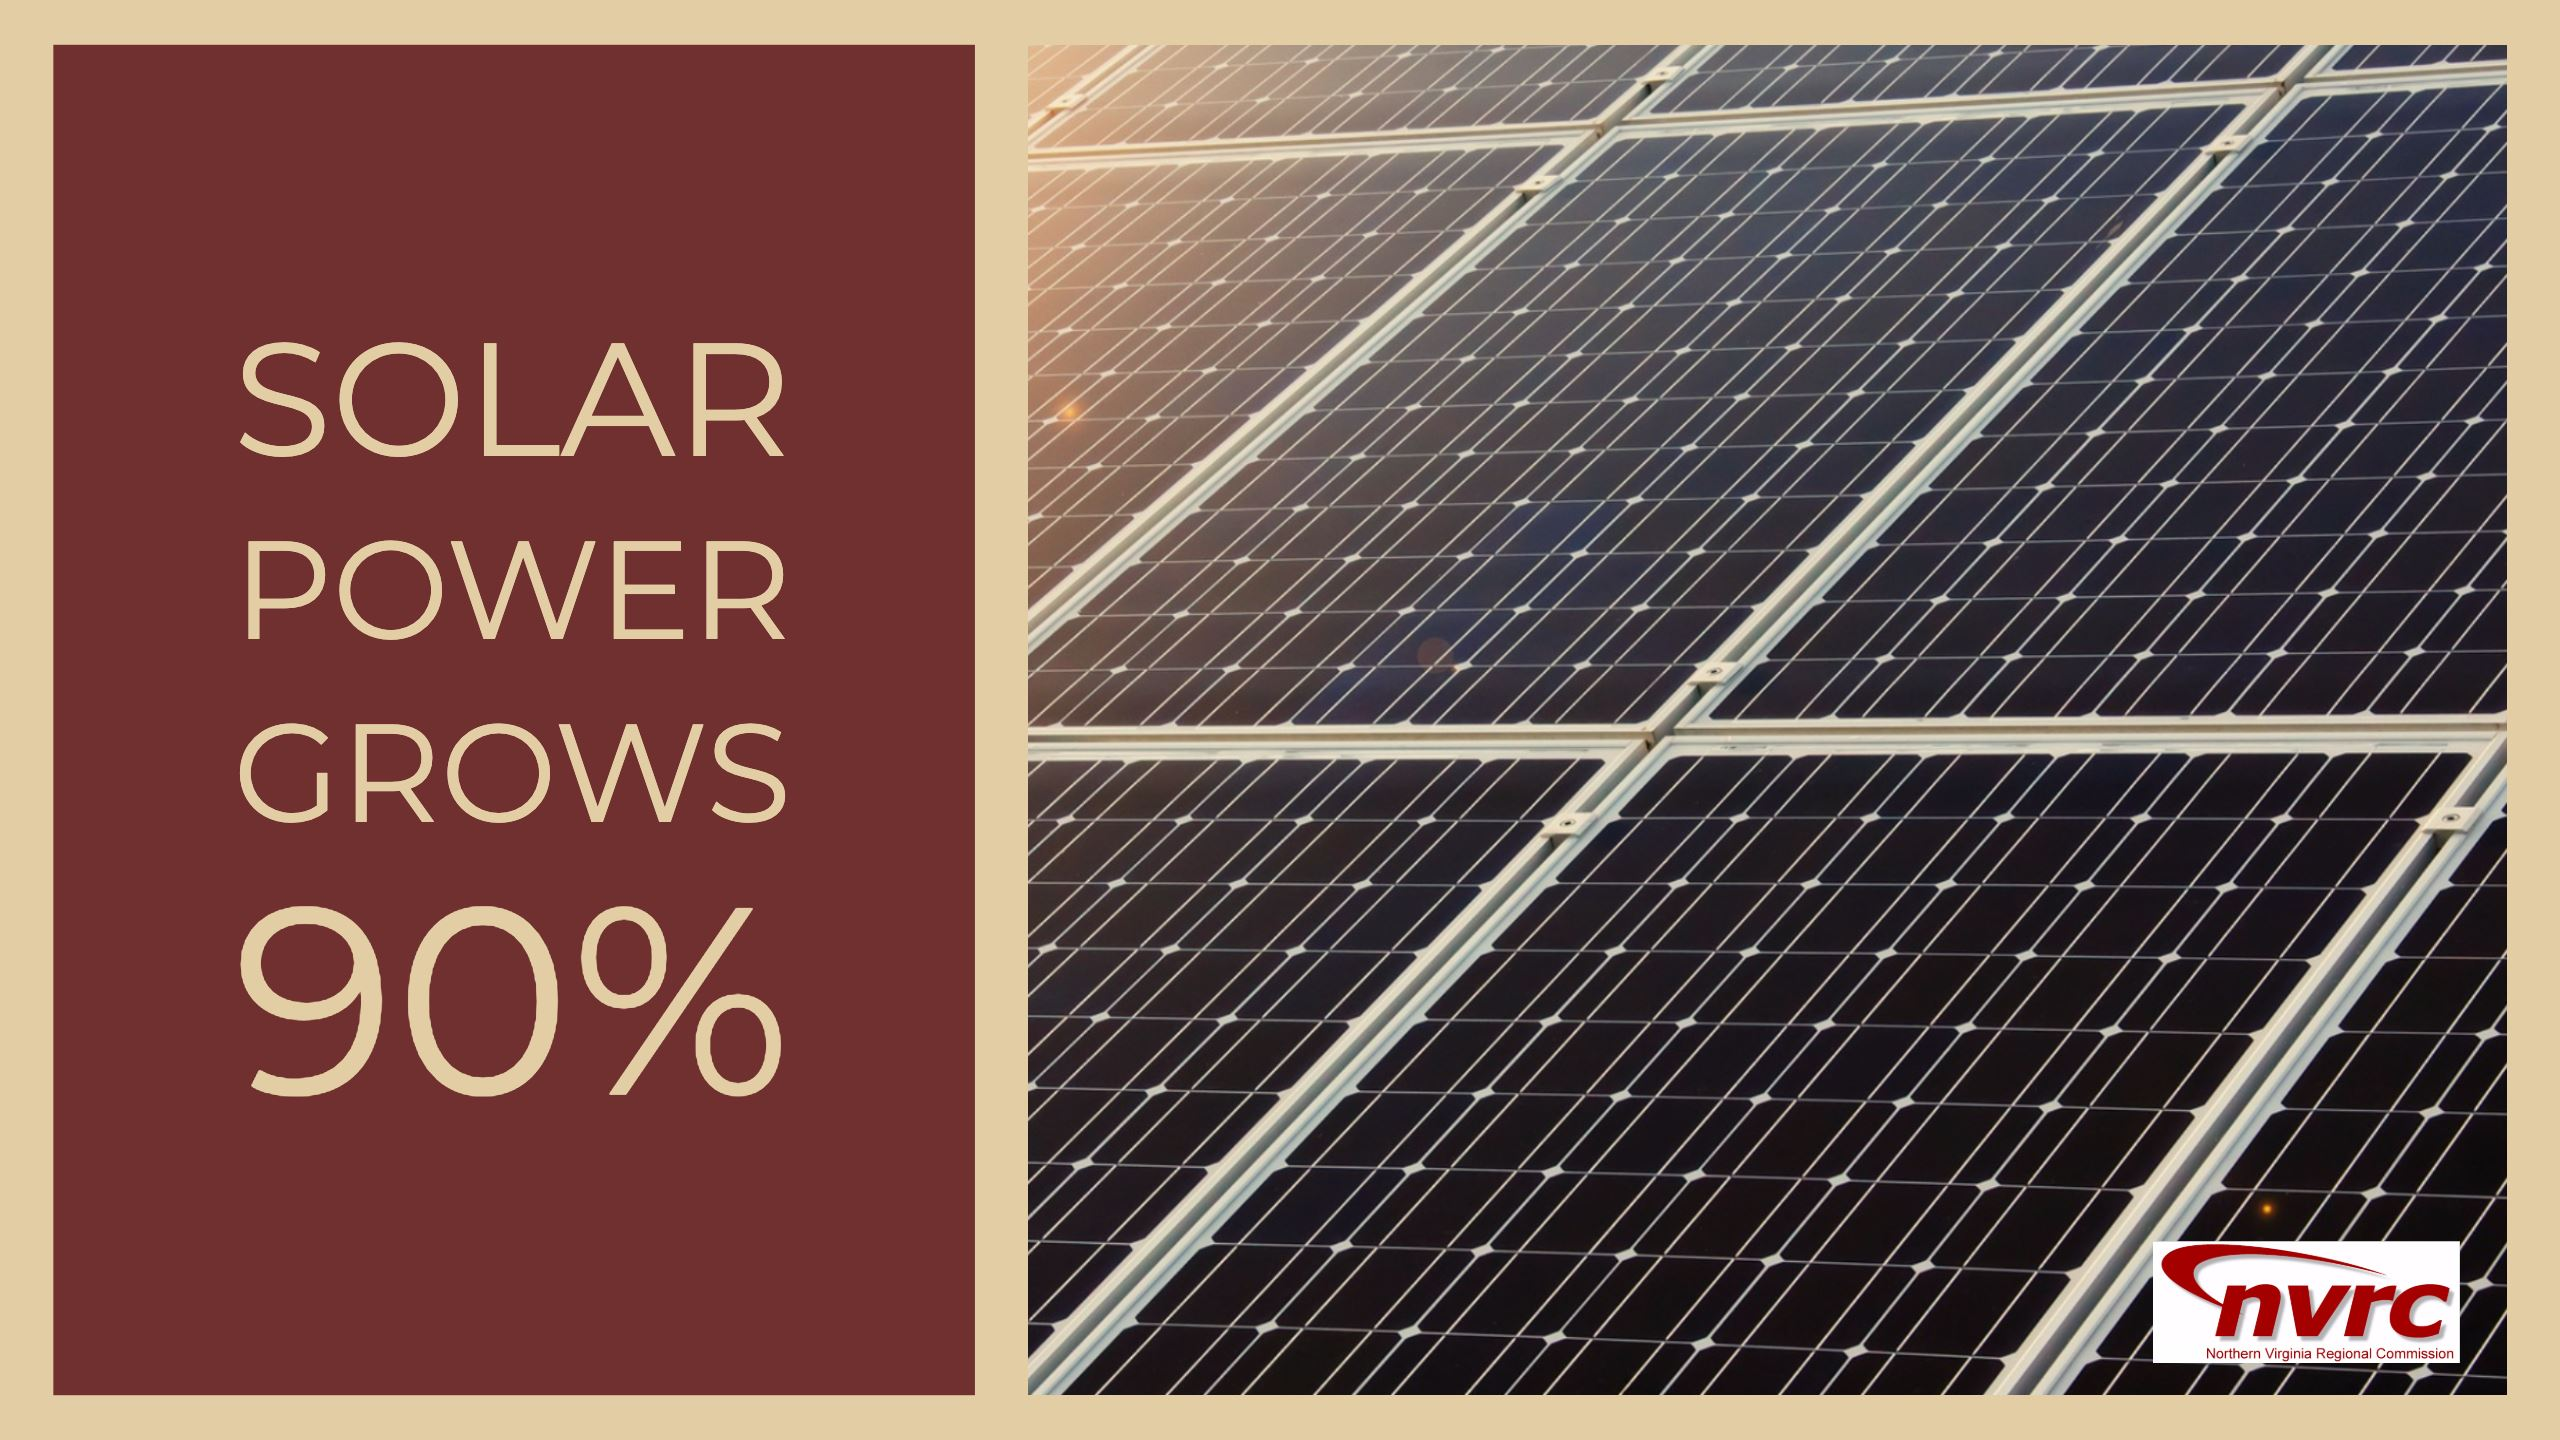 Solar Power Grows 90